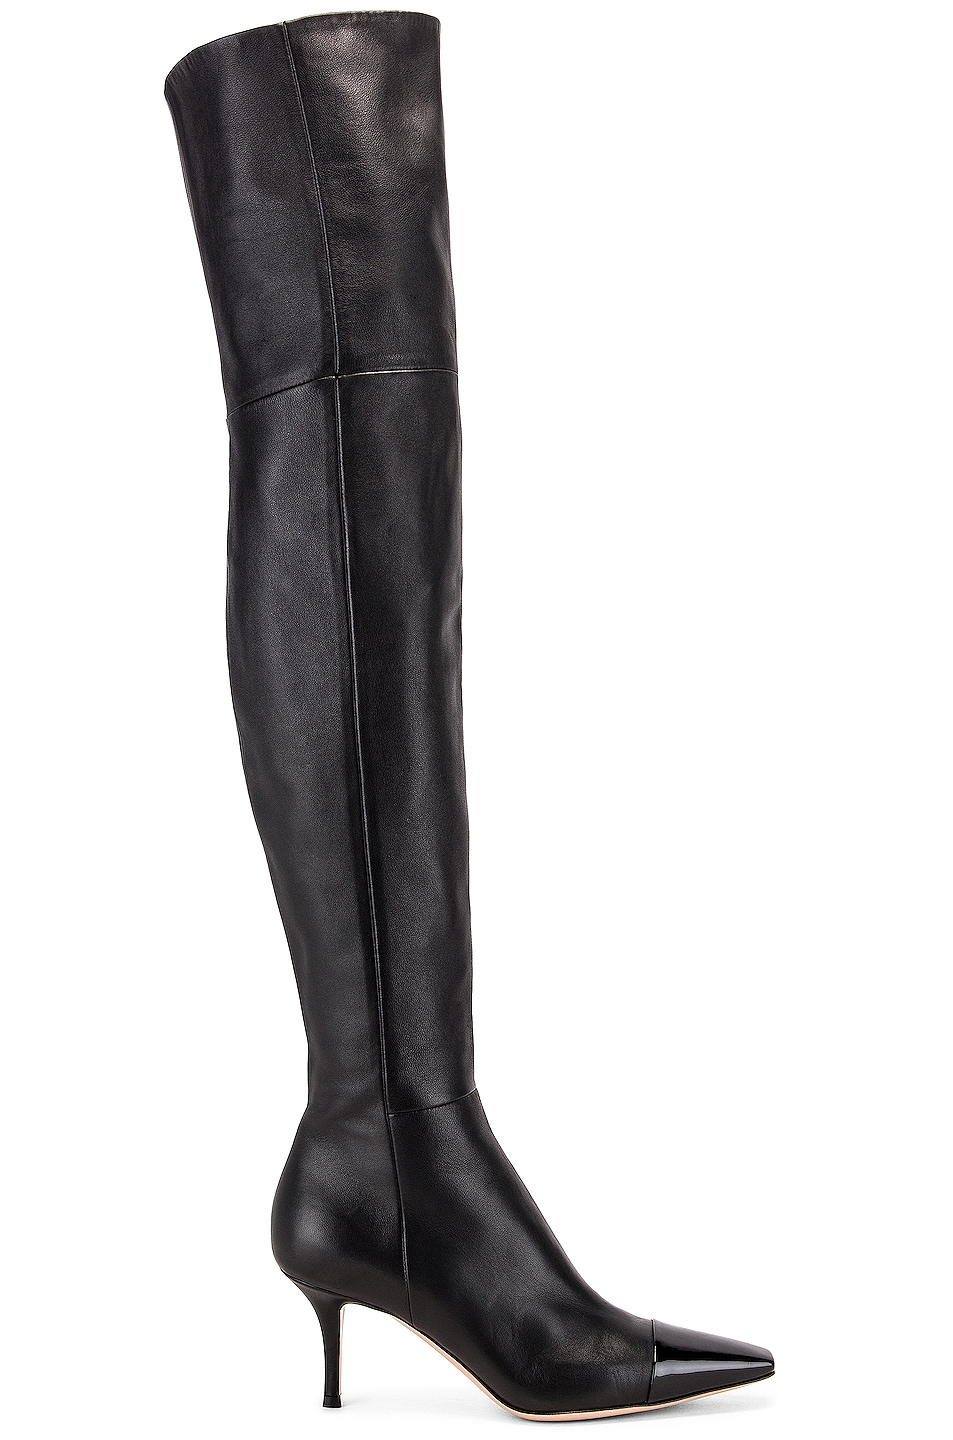 Image 1 of Gianvito Rossi Over the Knee Toe Cap Boots in Black